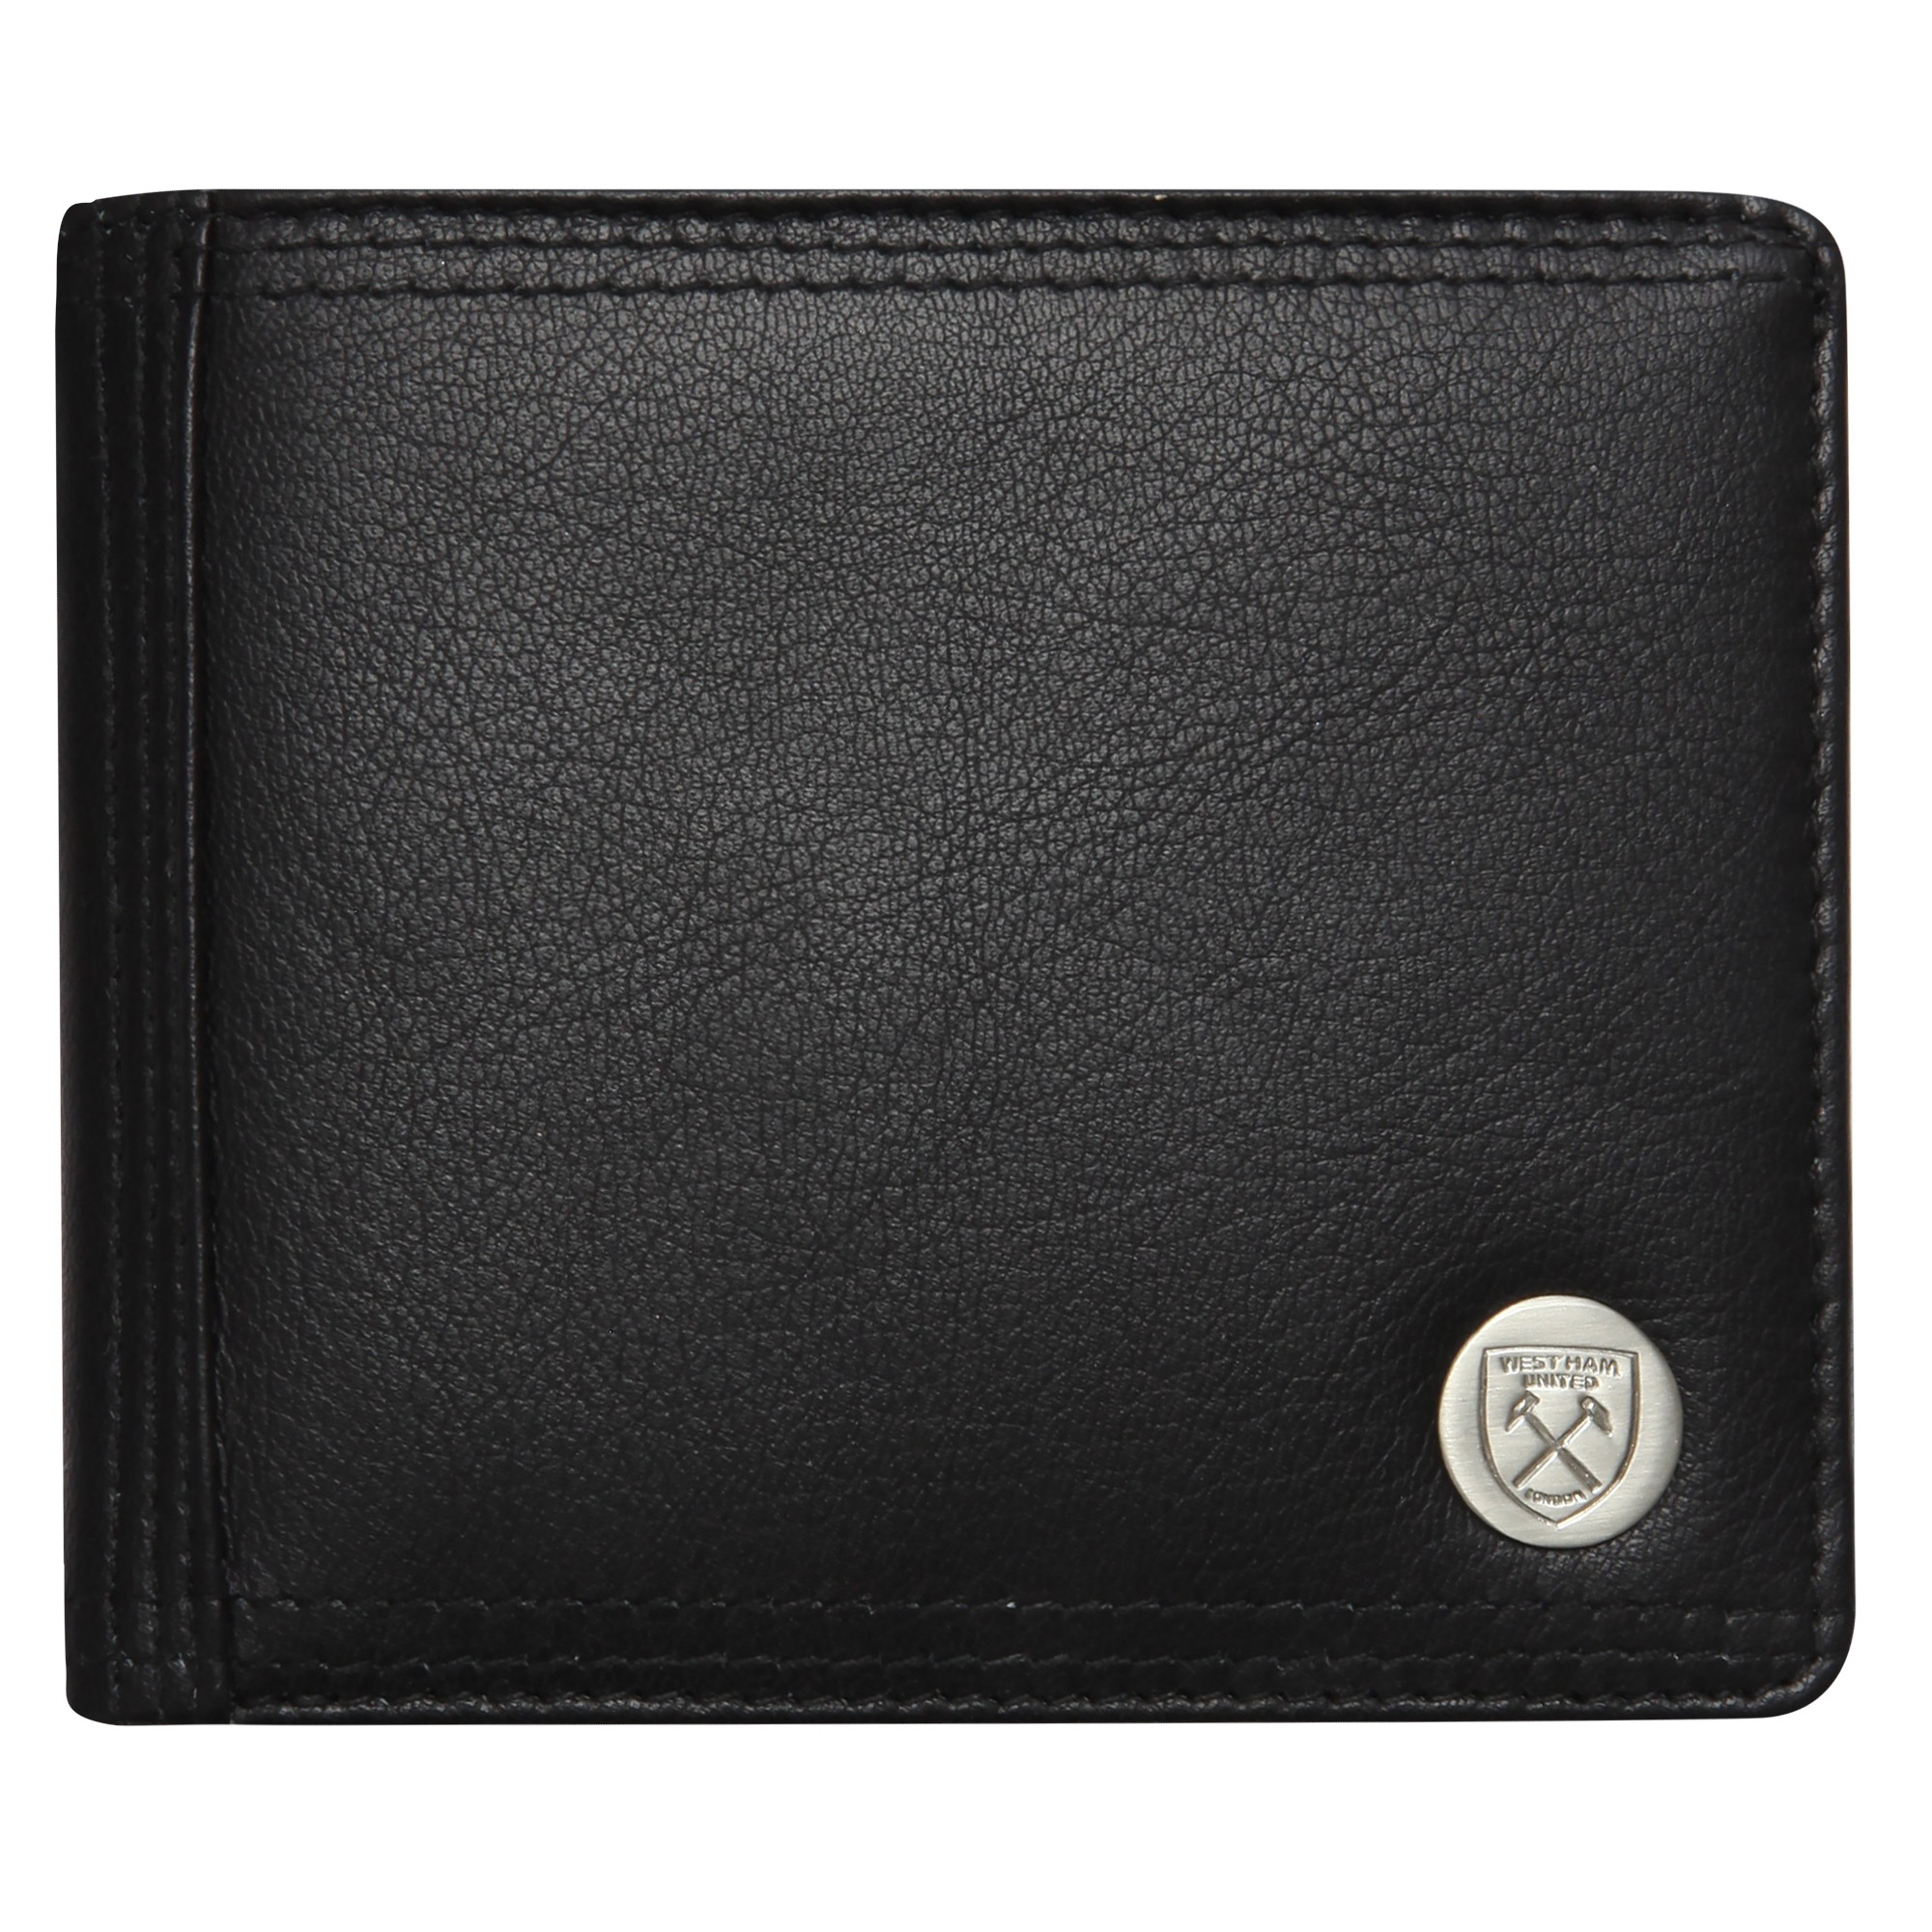 METAL LEATHER WALLET